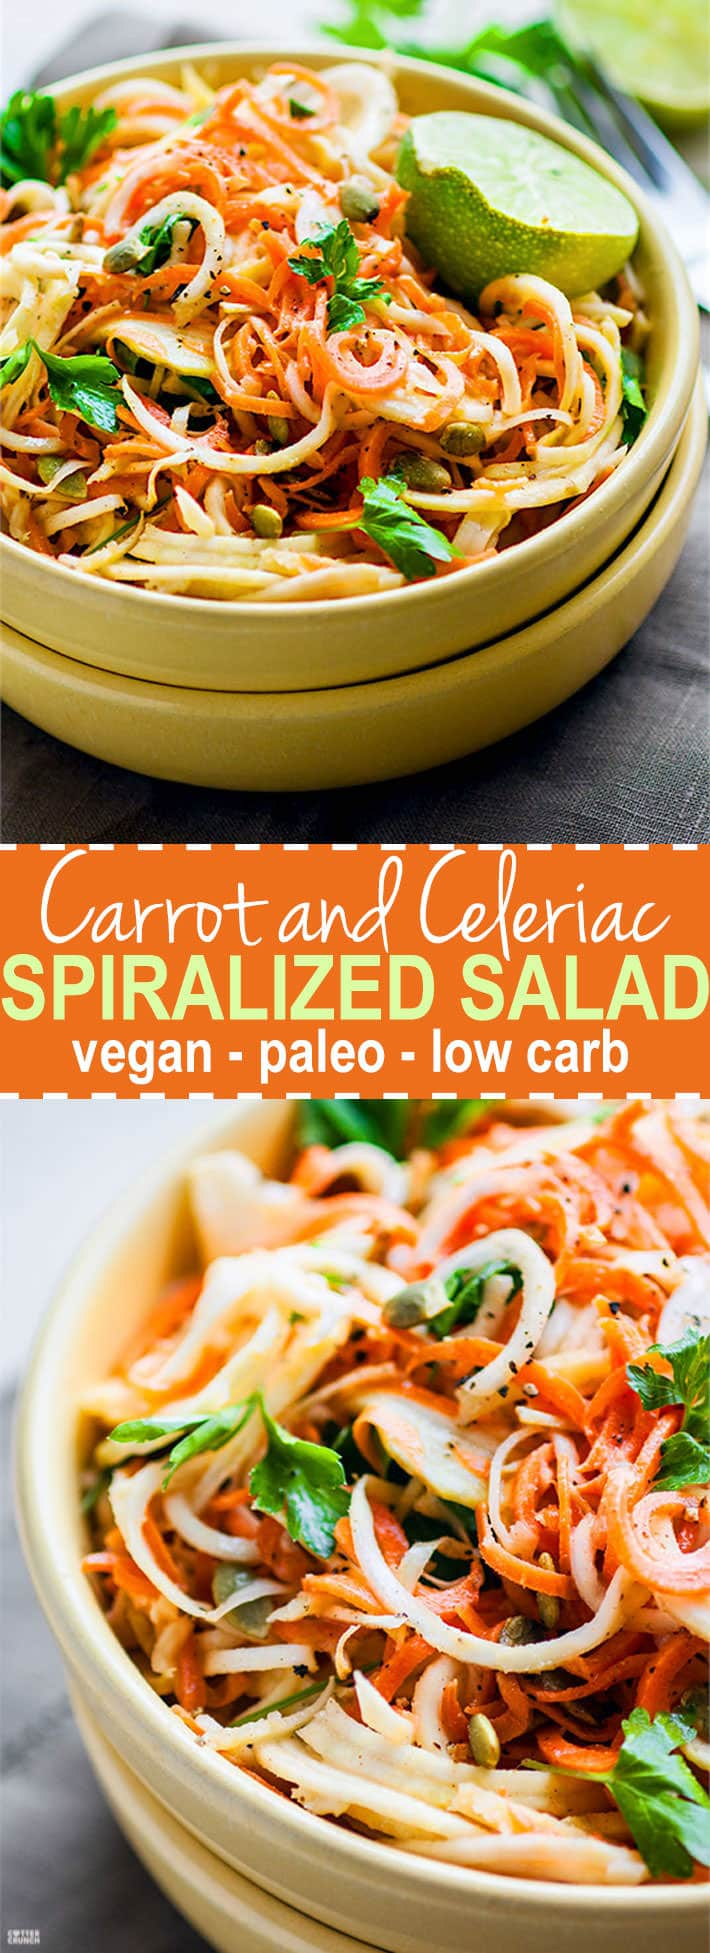 Easy Carrot Celeriac Spiralized Salad This Root Vegetable Spiralized Salad Is Simple Light